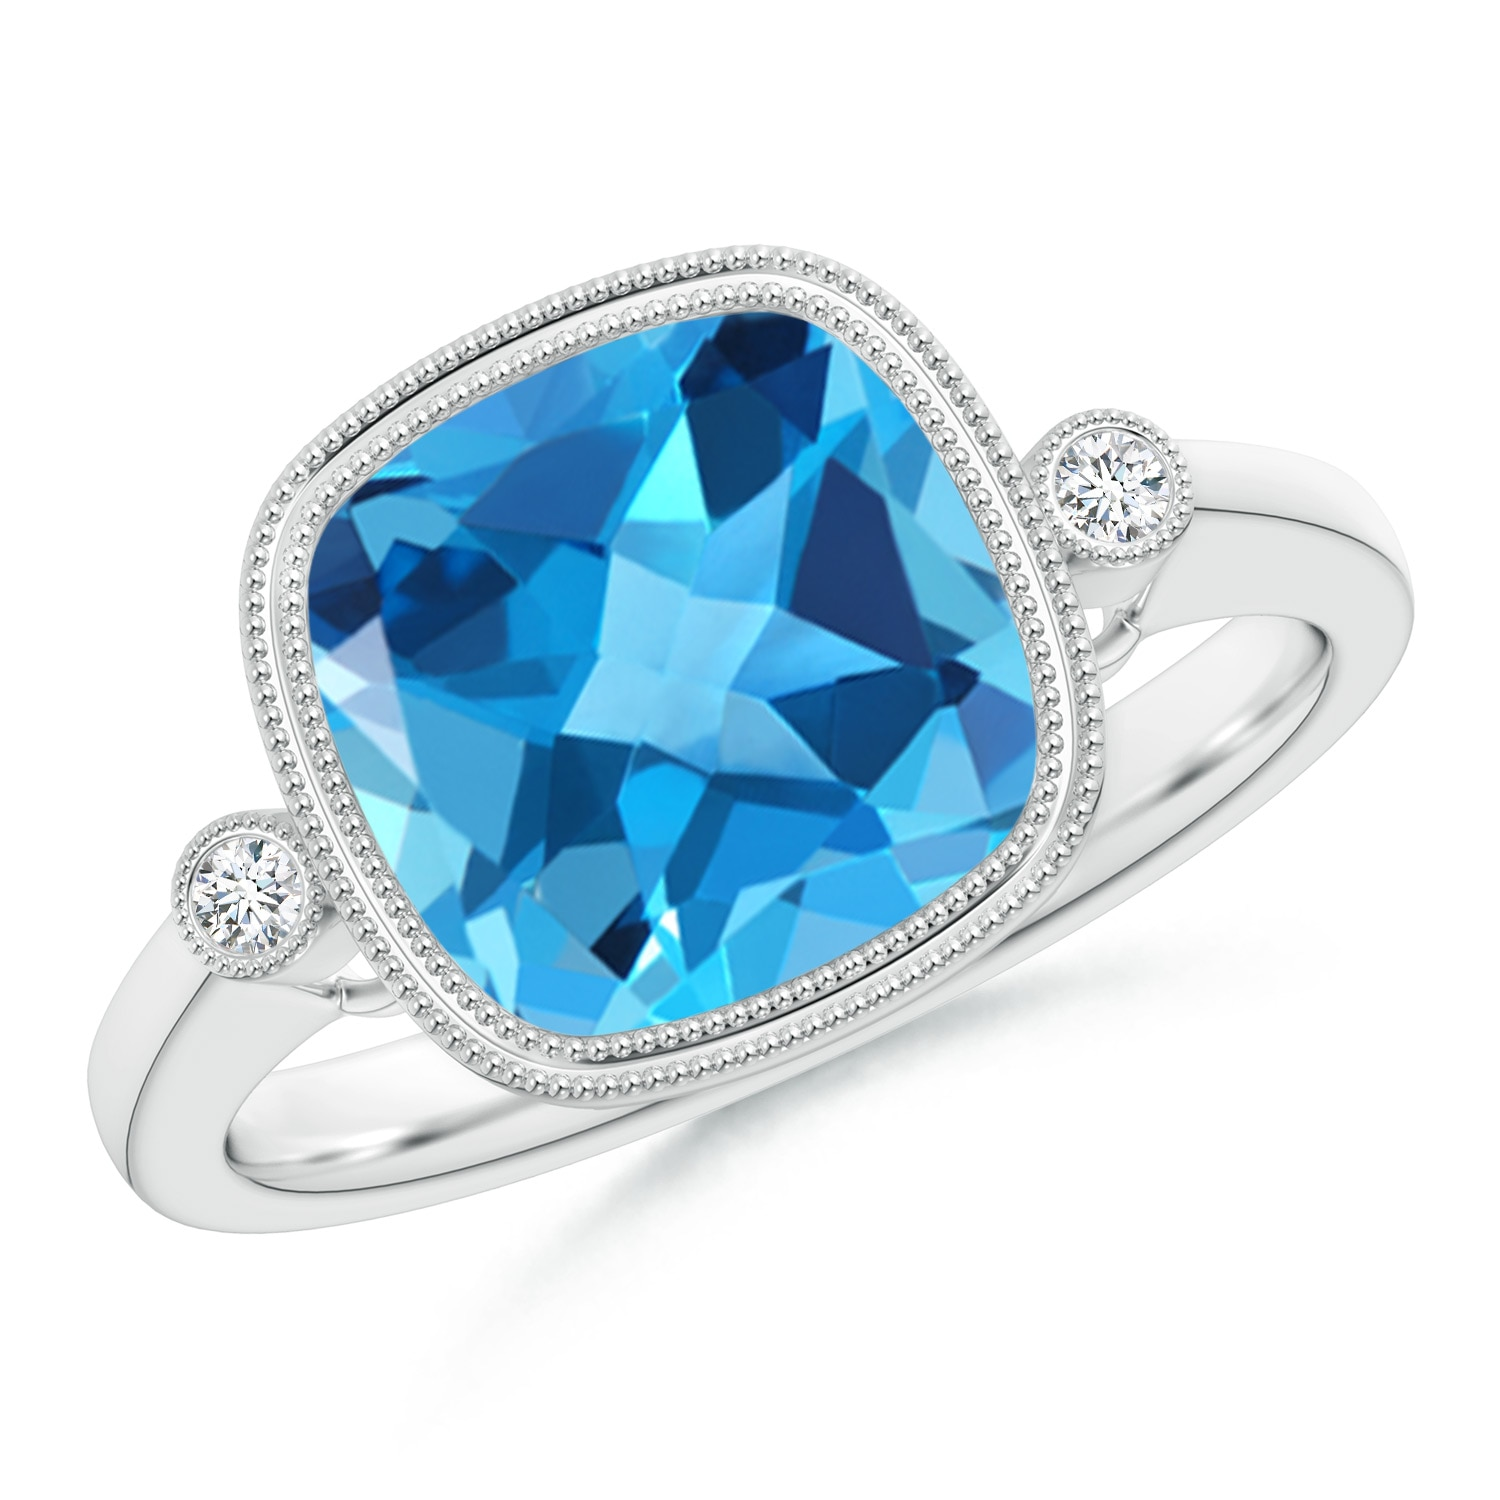 Angara Emerald-Cut Swiss Blue Topaz Cocktail Ring in Rose Gold gGmdS